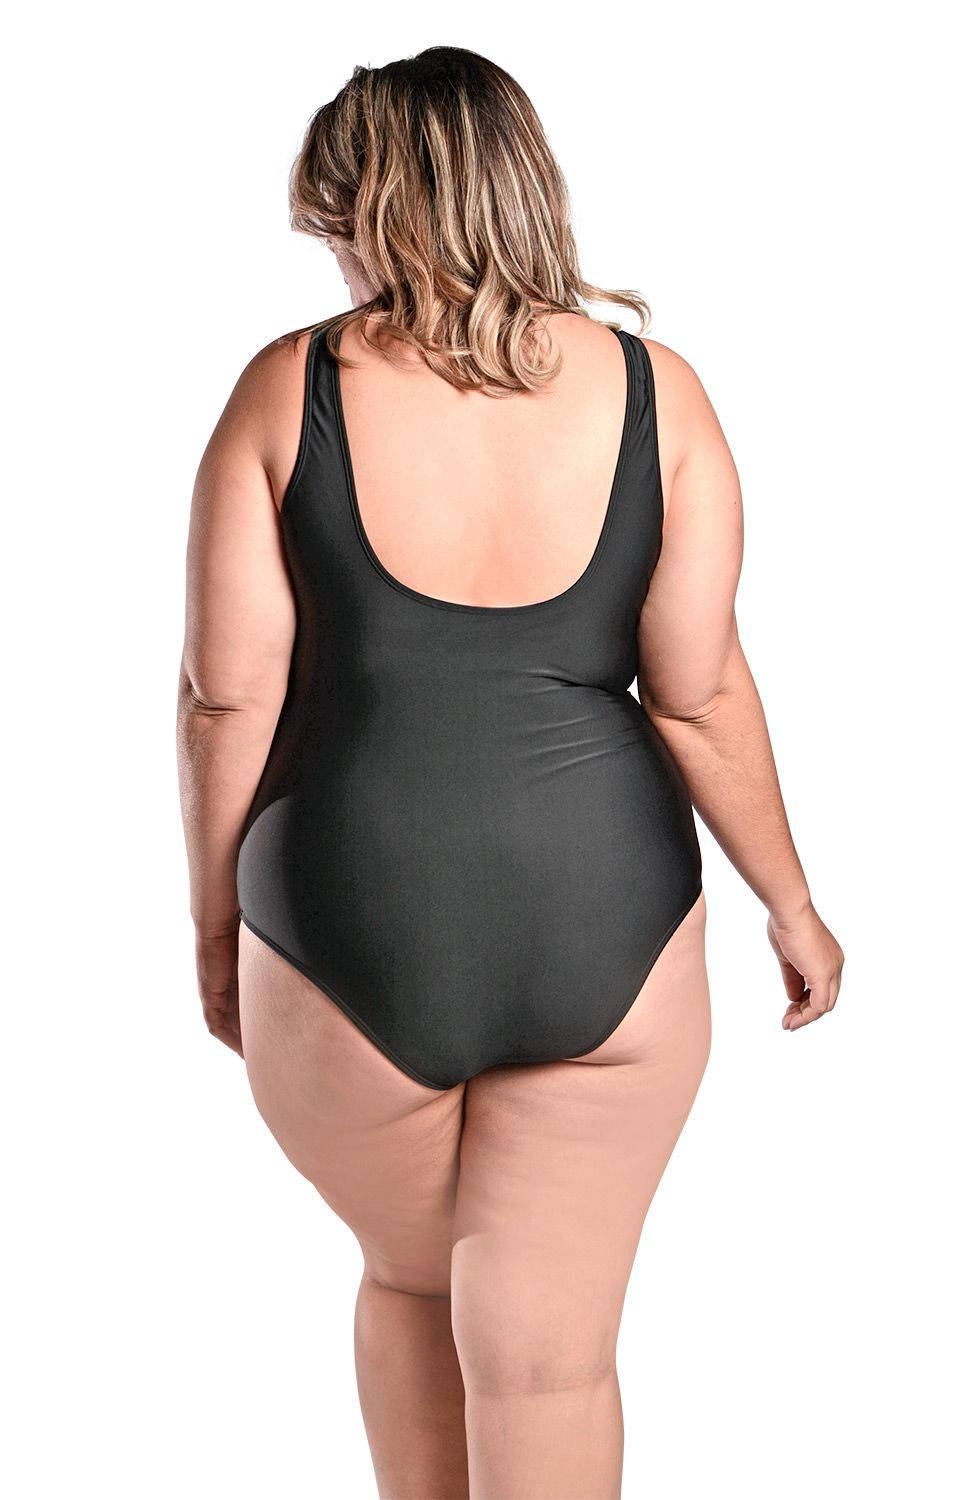 Maiô Body Plus Size com Alças Largas e Recorte no Busto Preto